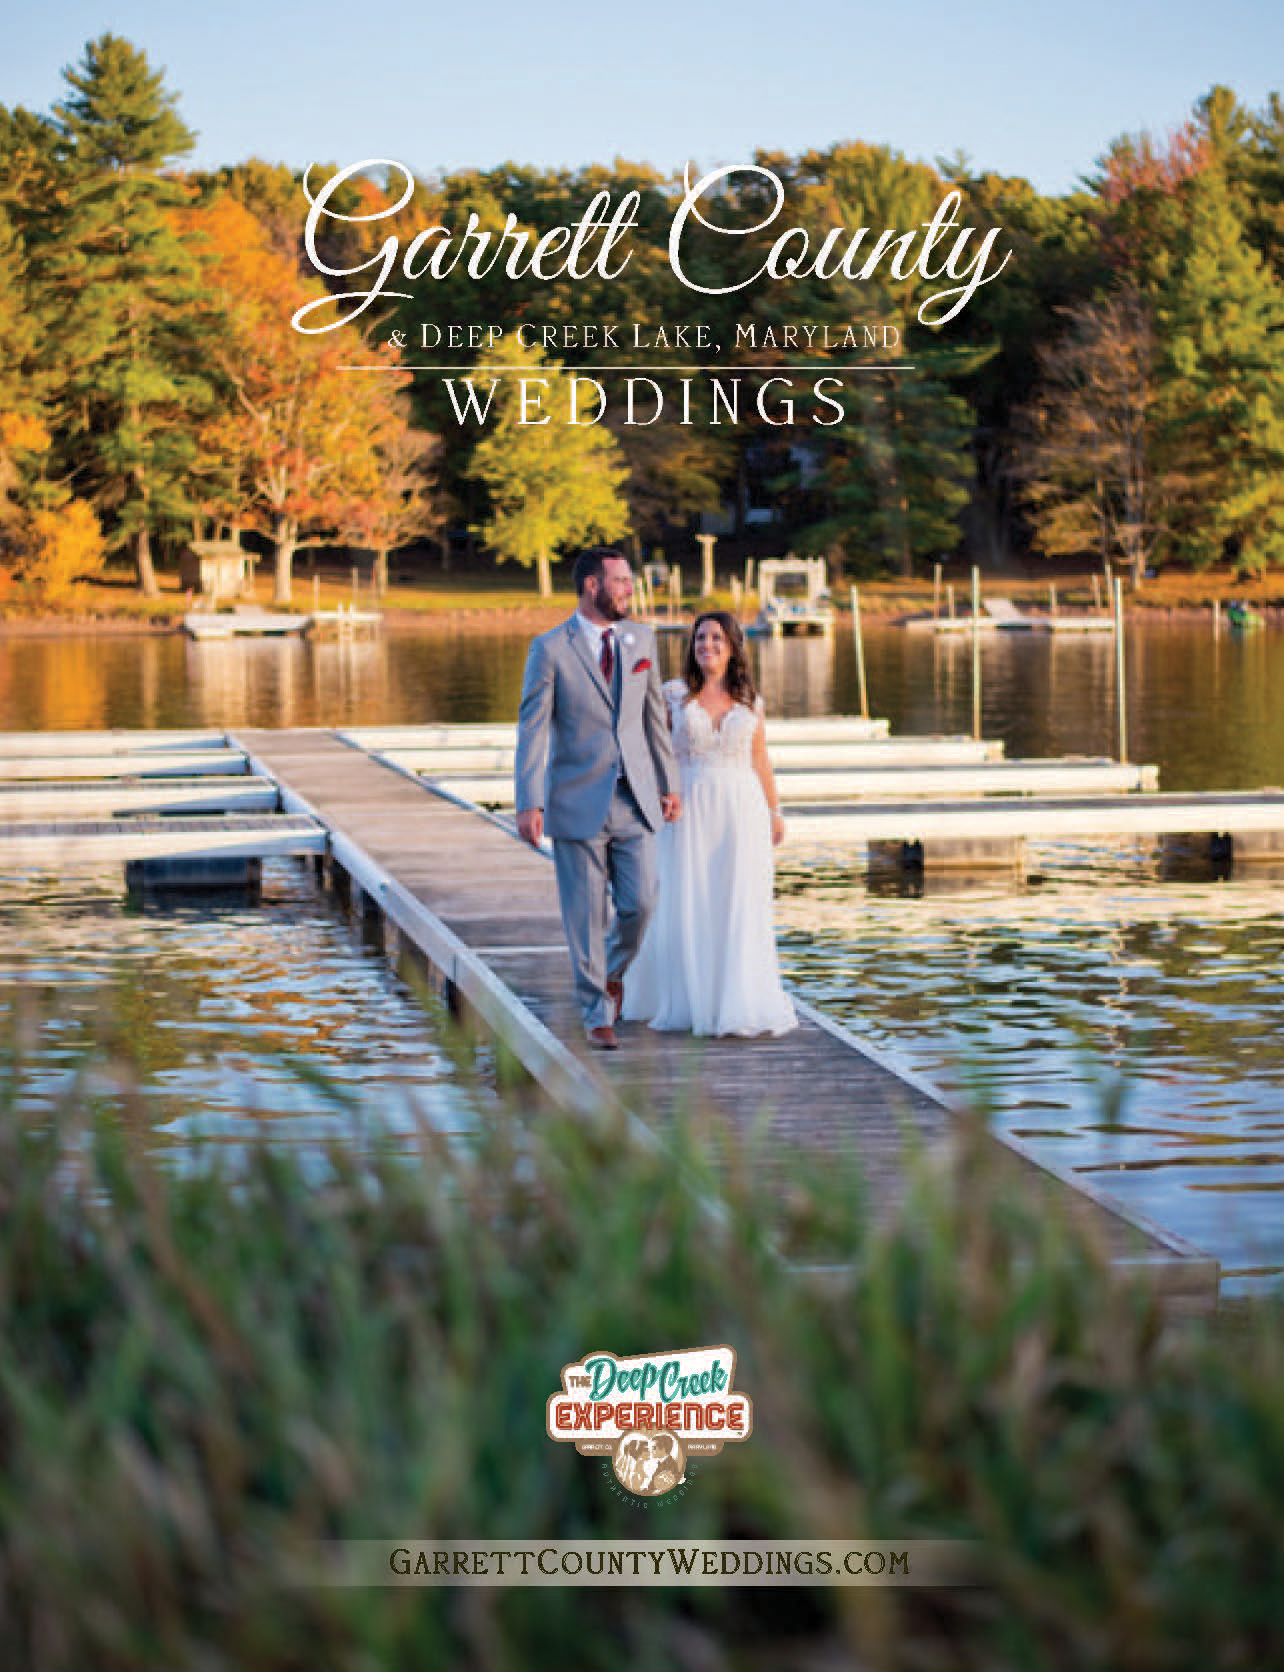 Garrett County & Deep Creek Lake, Maryland Wedding Guide